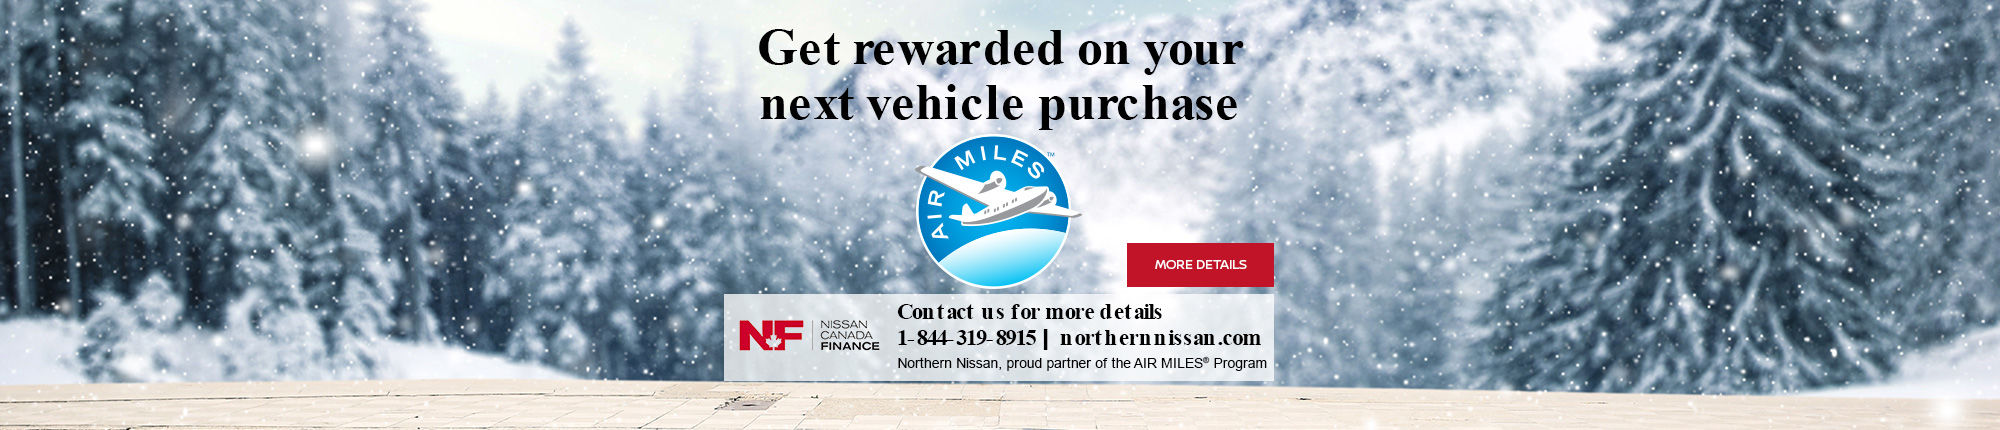 Get Rewarded on Your Next Vehicle Purchase